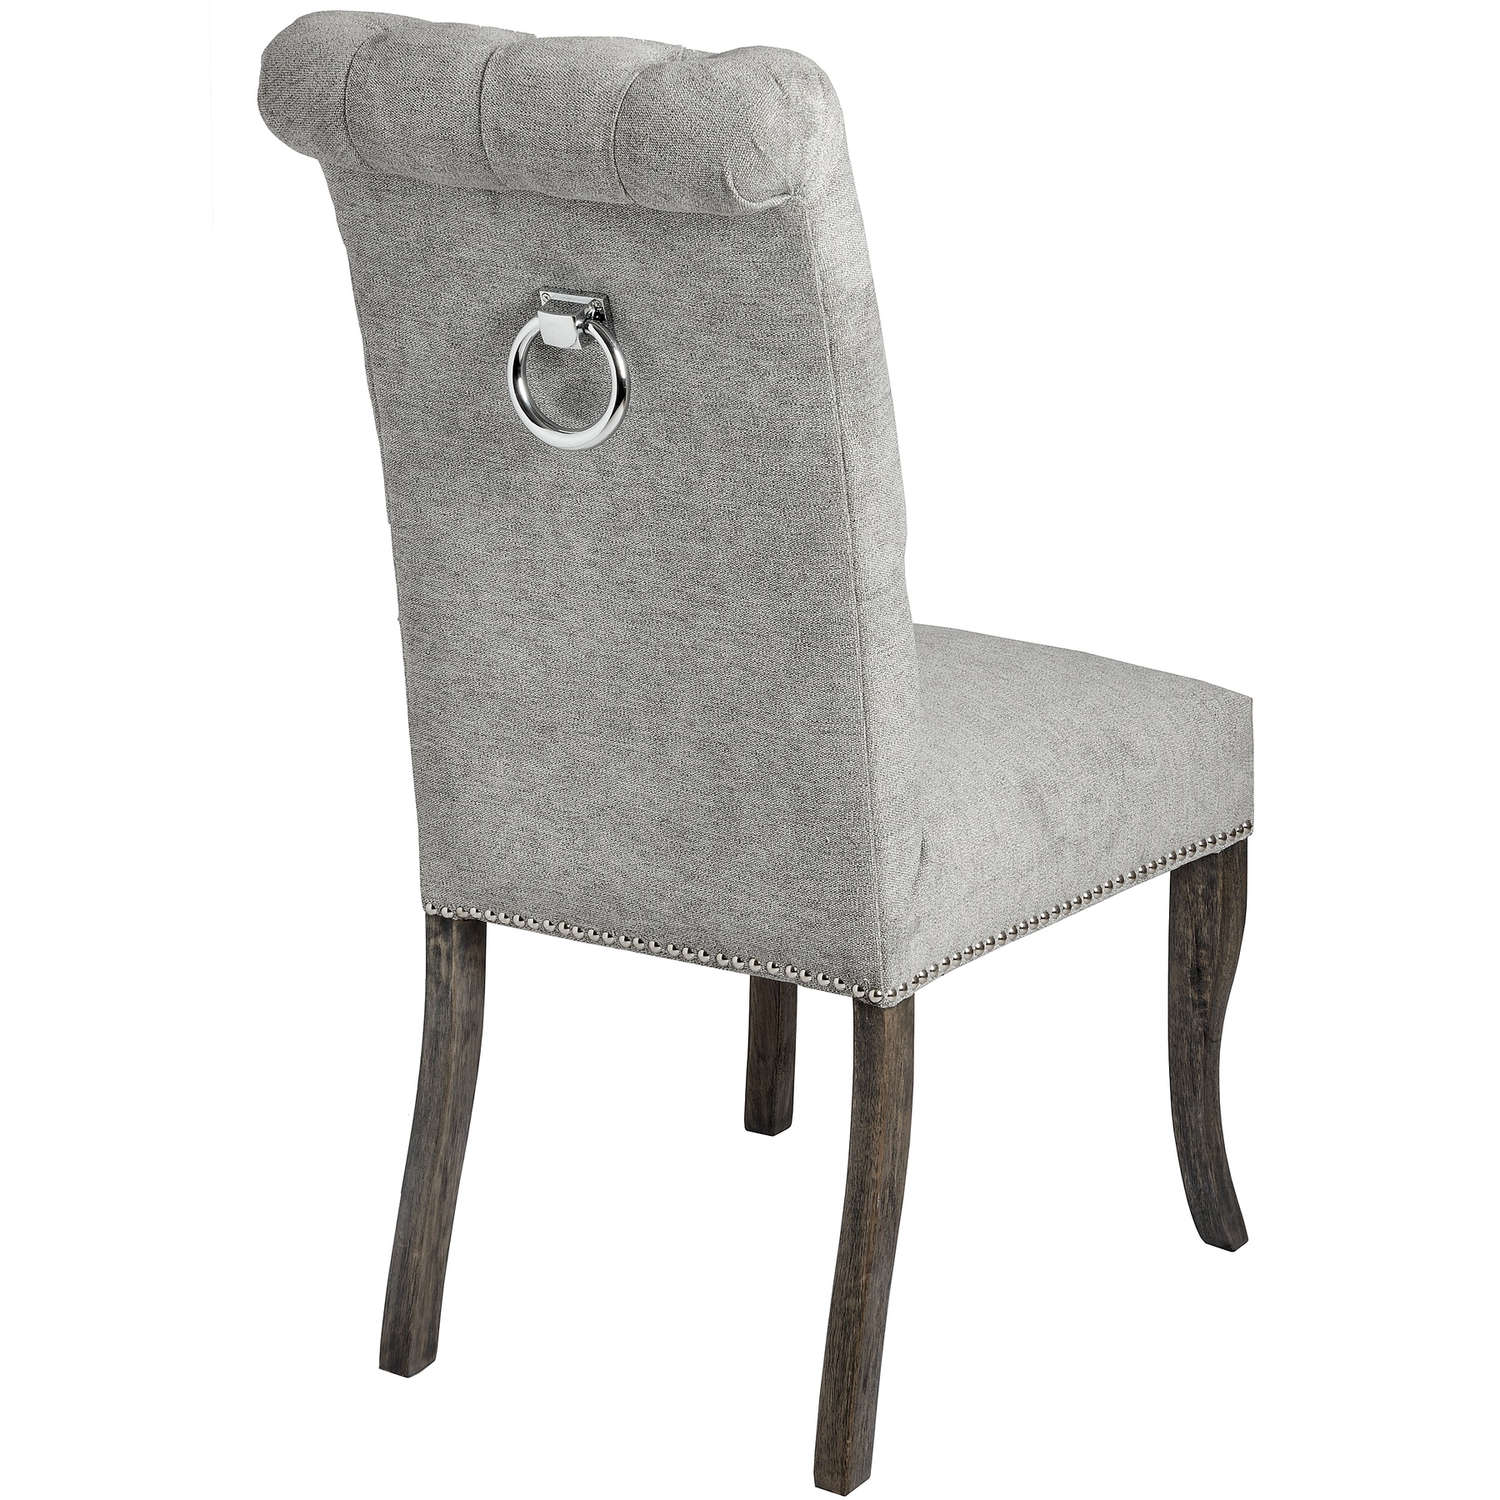 Silver Roll Top Dining Chair With Ring Pull - Image 2